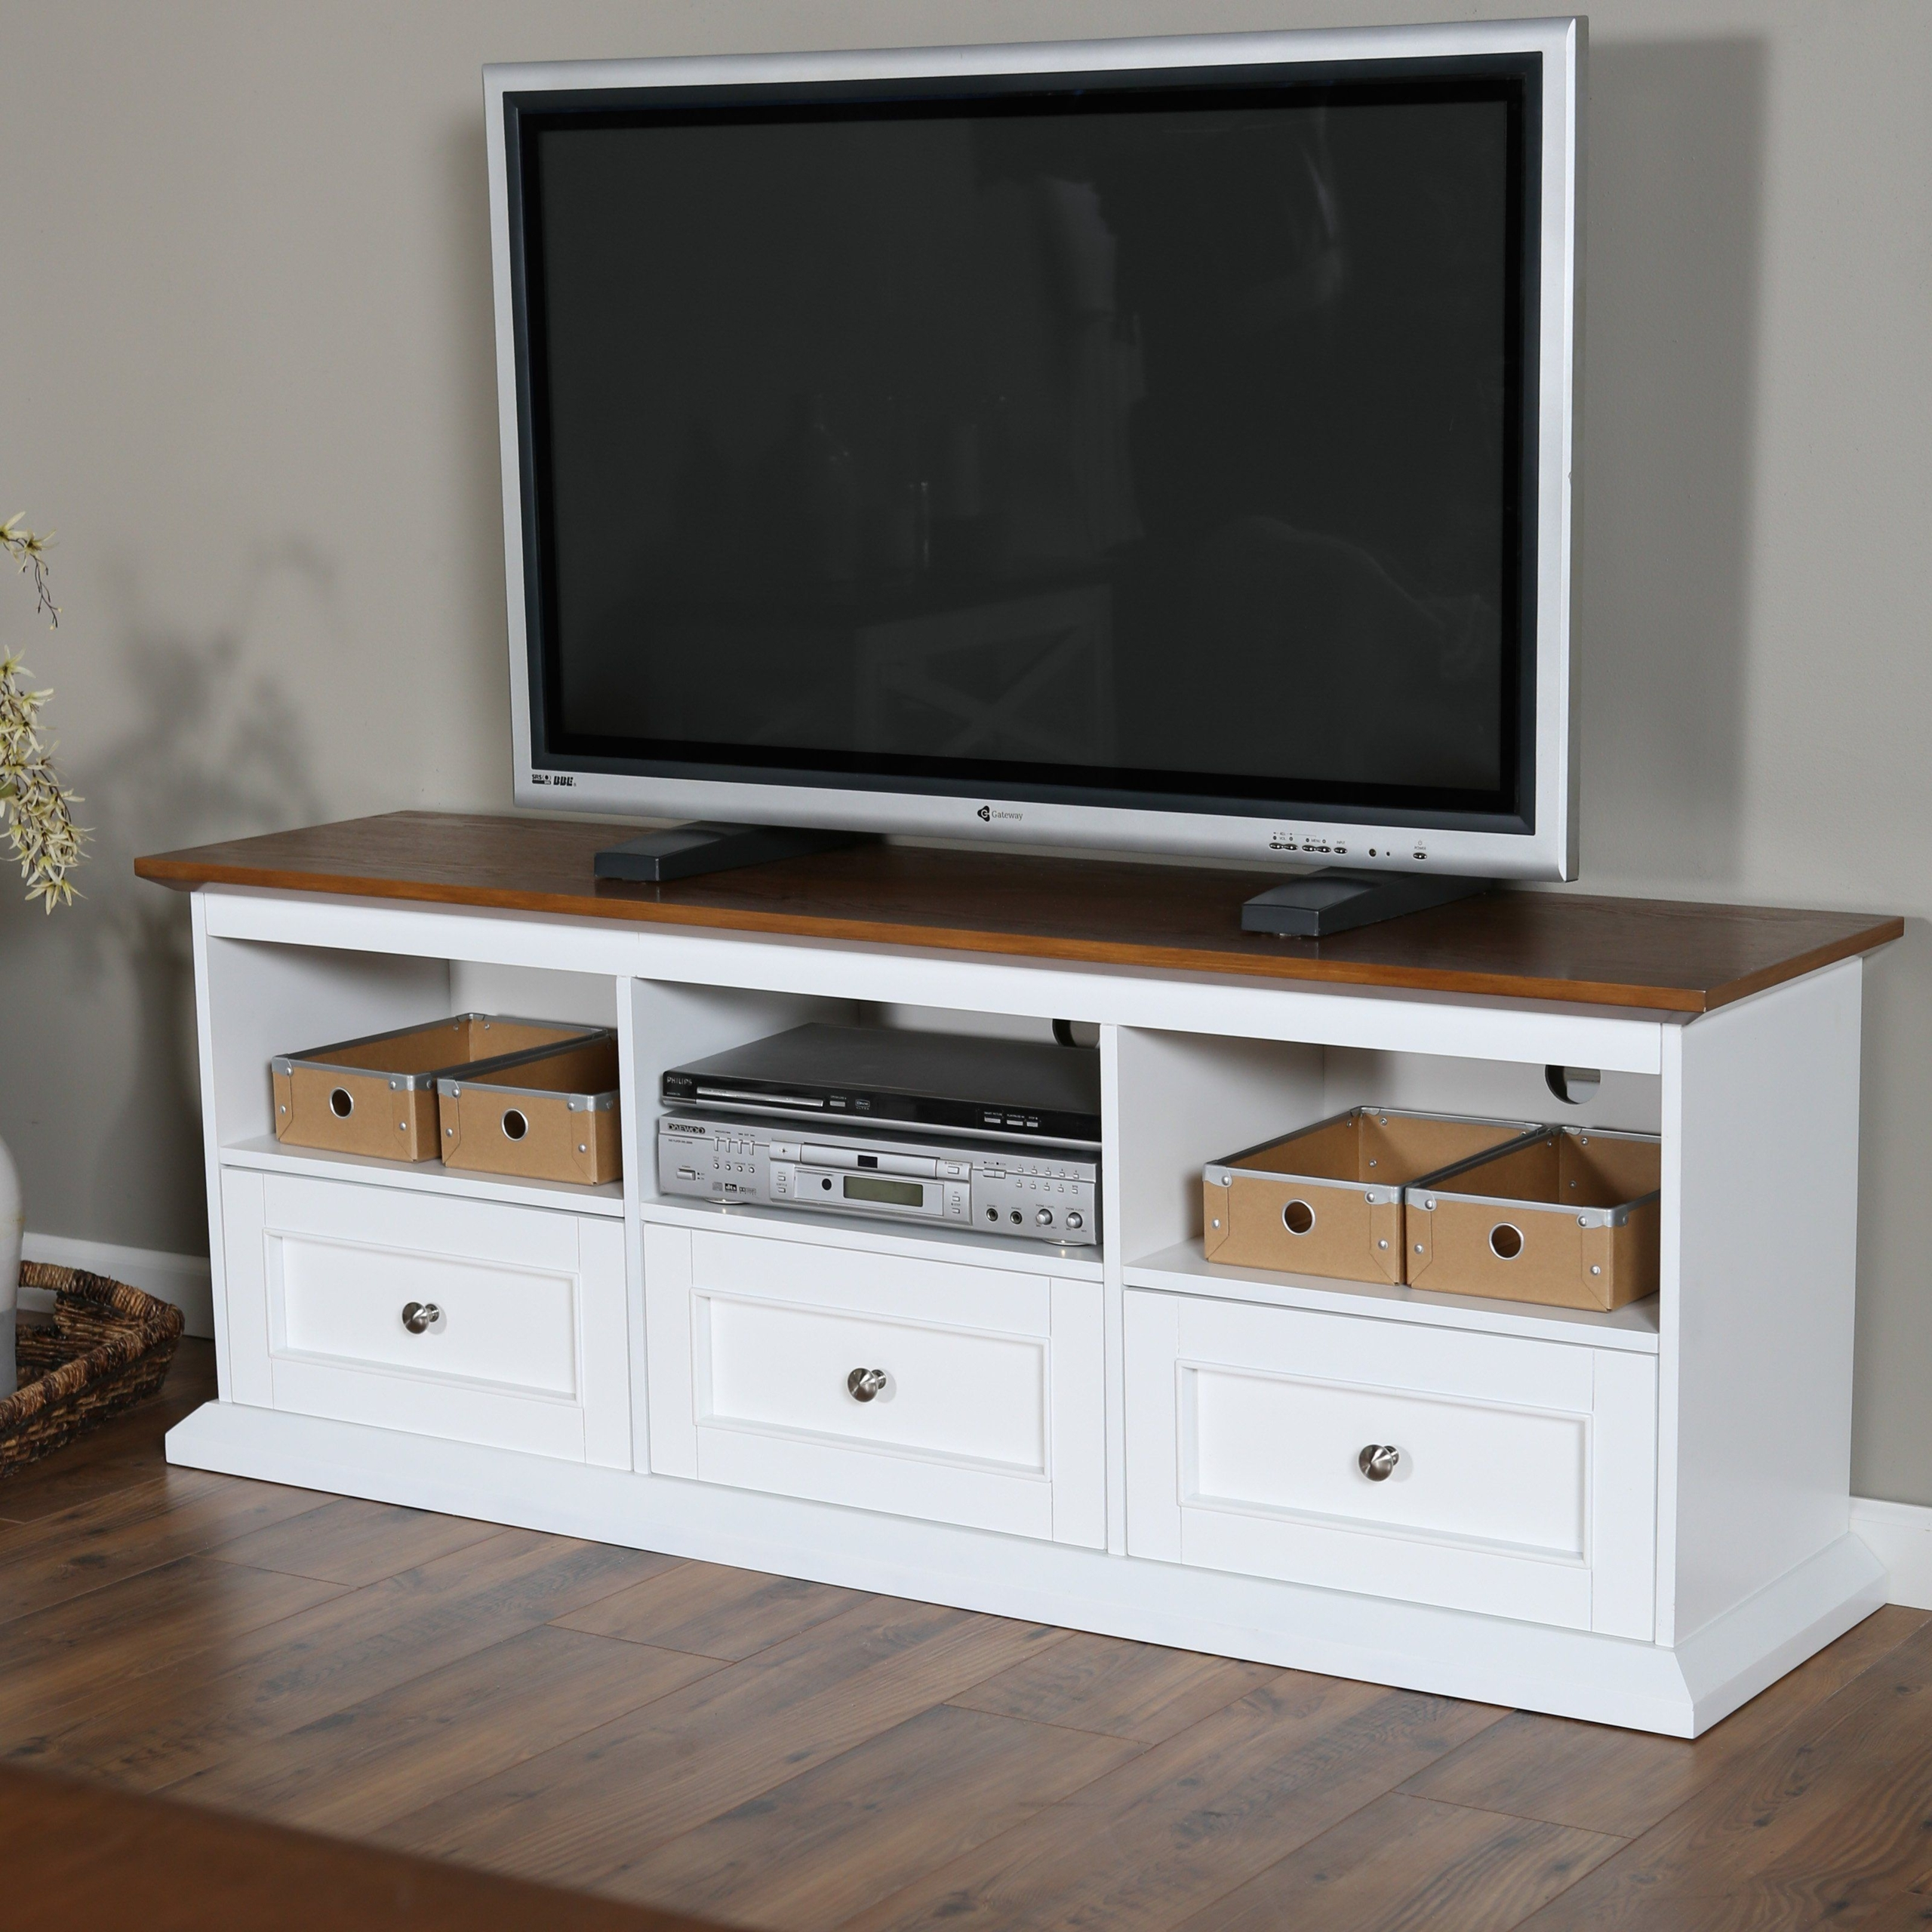 Beau White Wooden Tv Cabinet